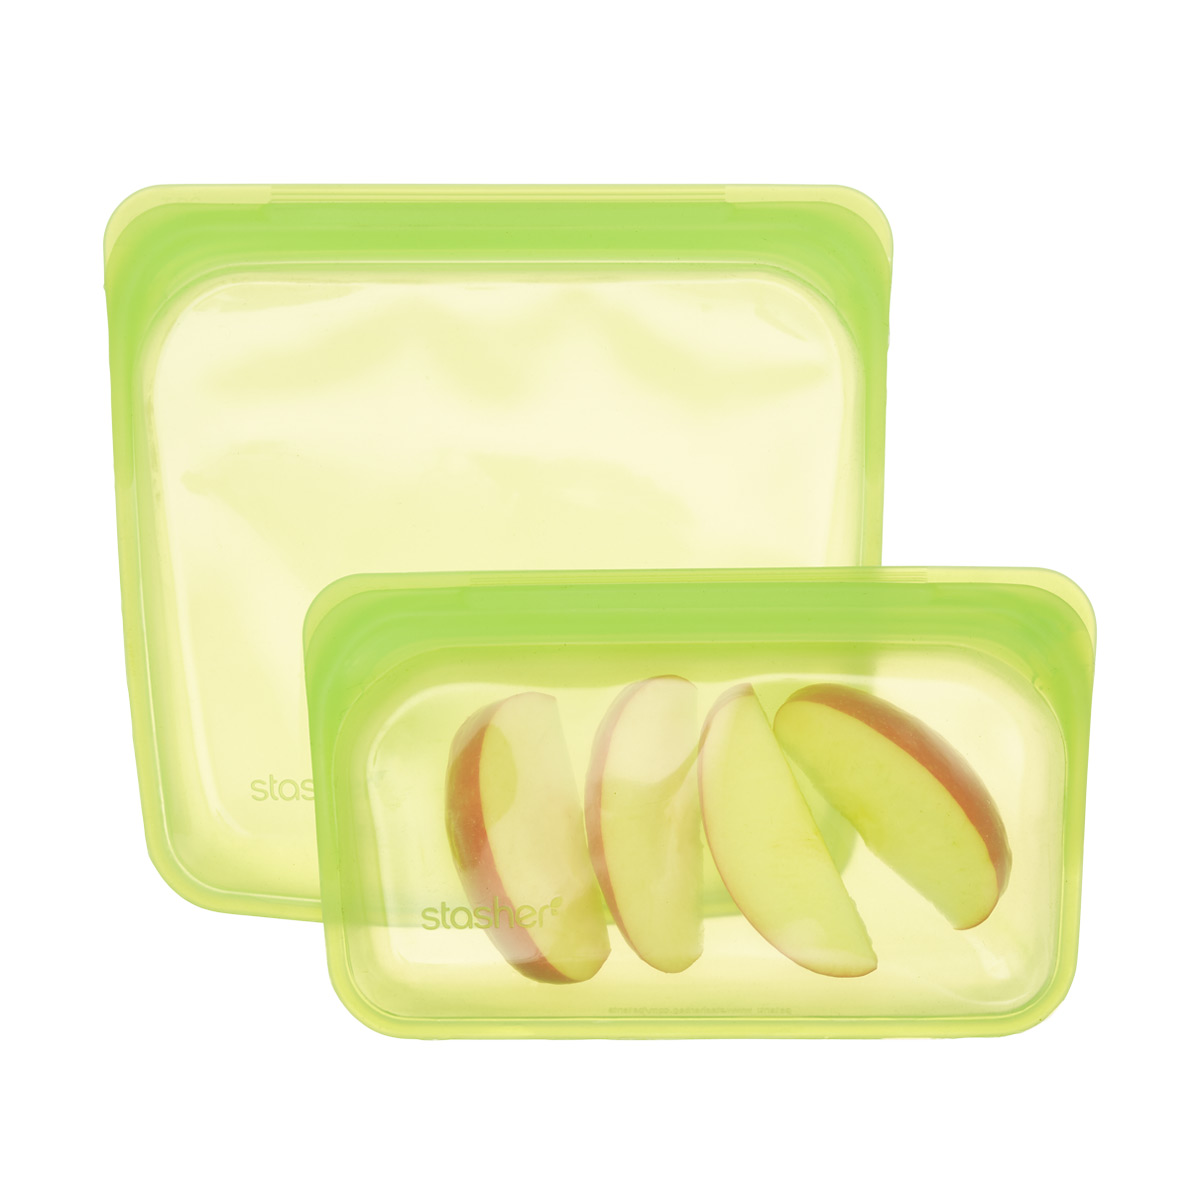 Stasher Silicone Lime Reusable Storage Bag